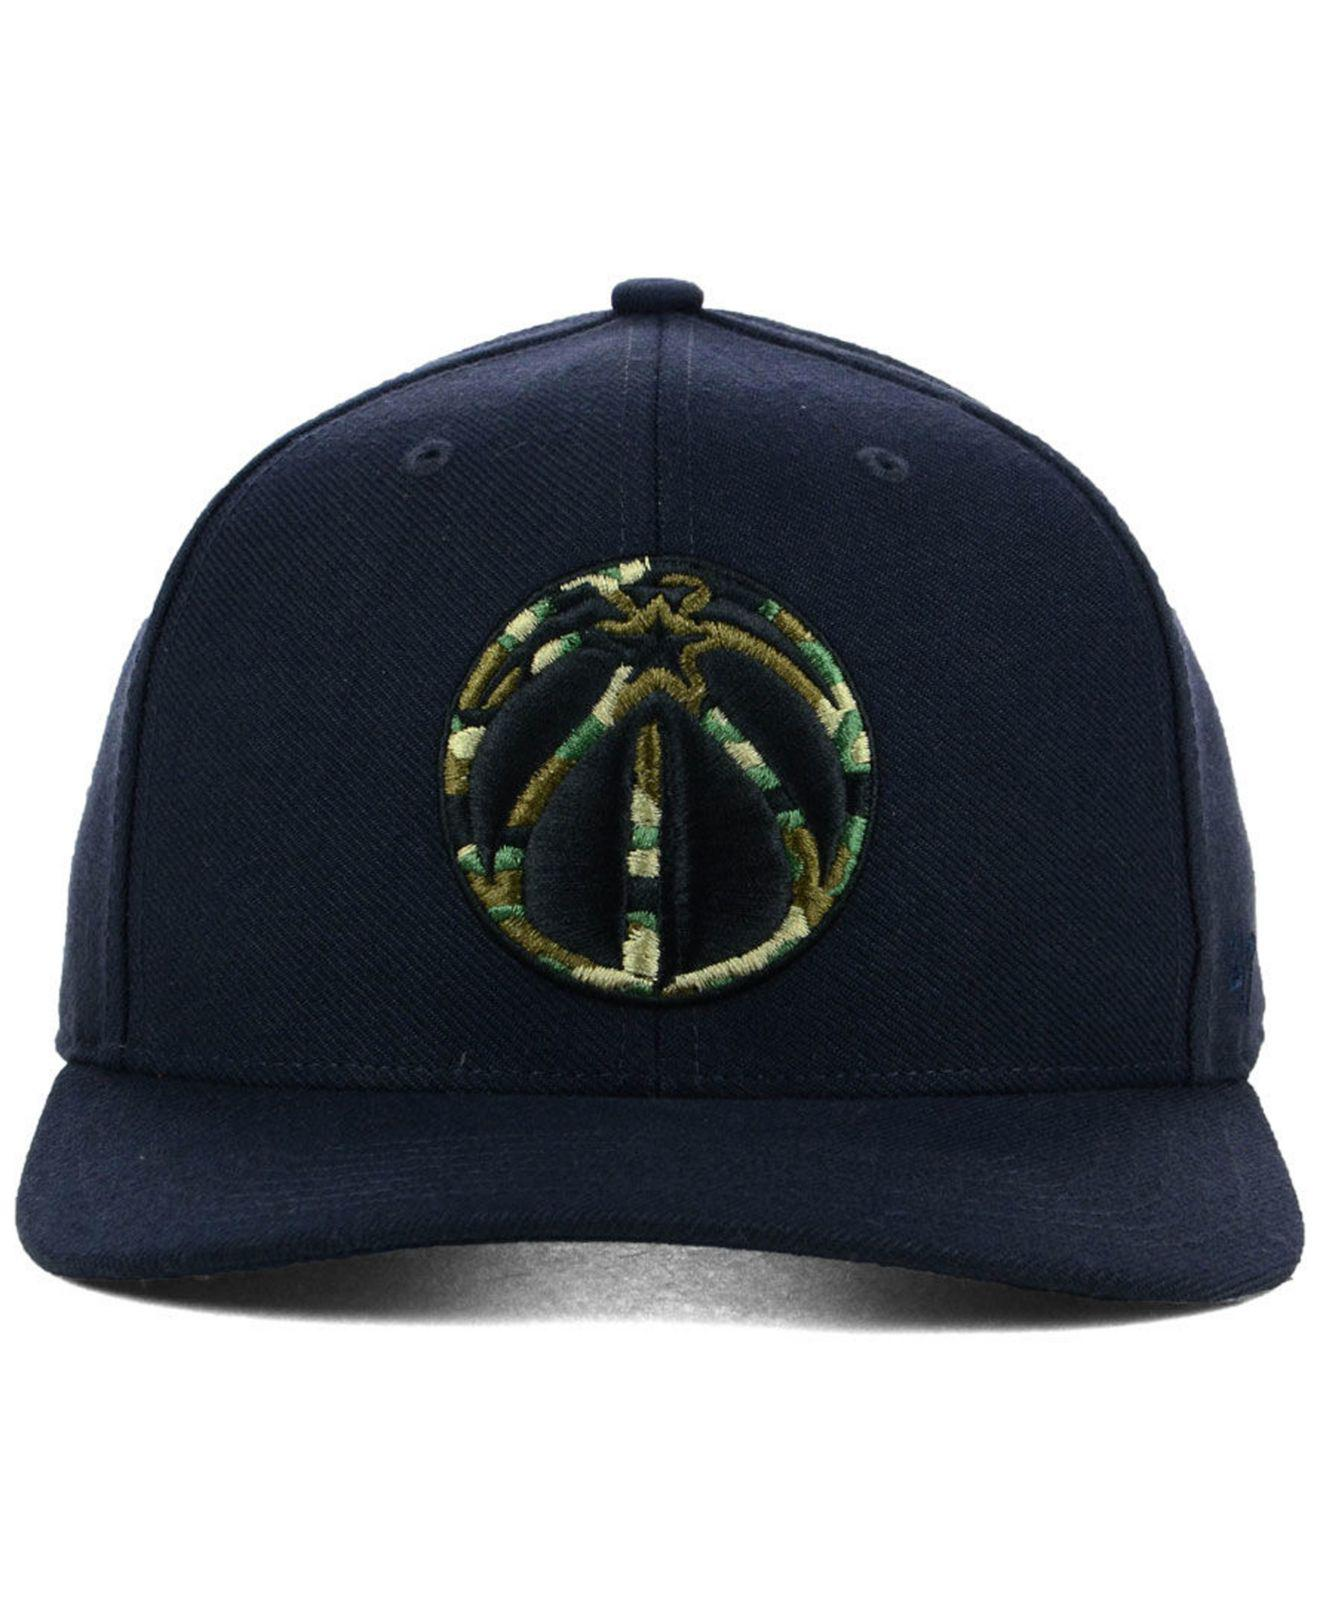 the latest 0eaa9 1f051 ... reduced lyst 47 brand washington wizards camfill mvp cap in blue for  men f792d bfcdd